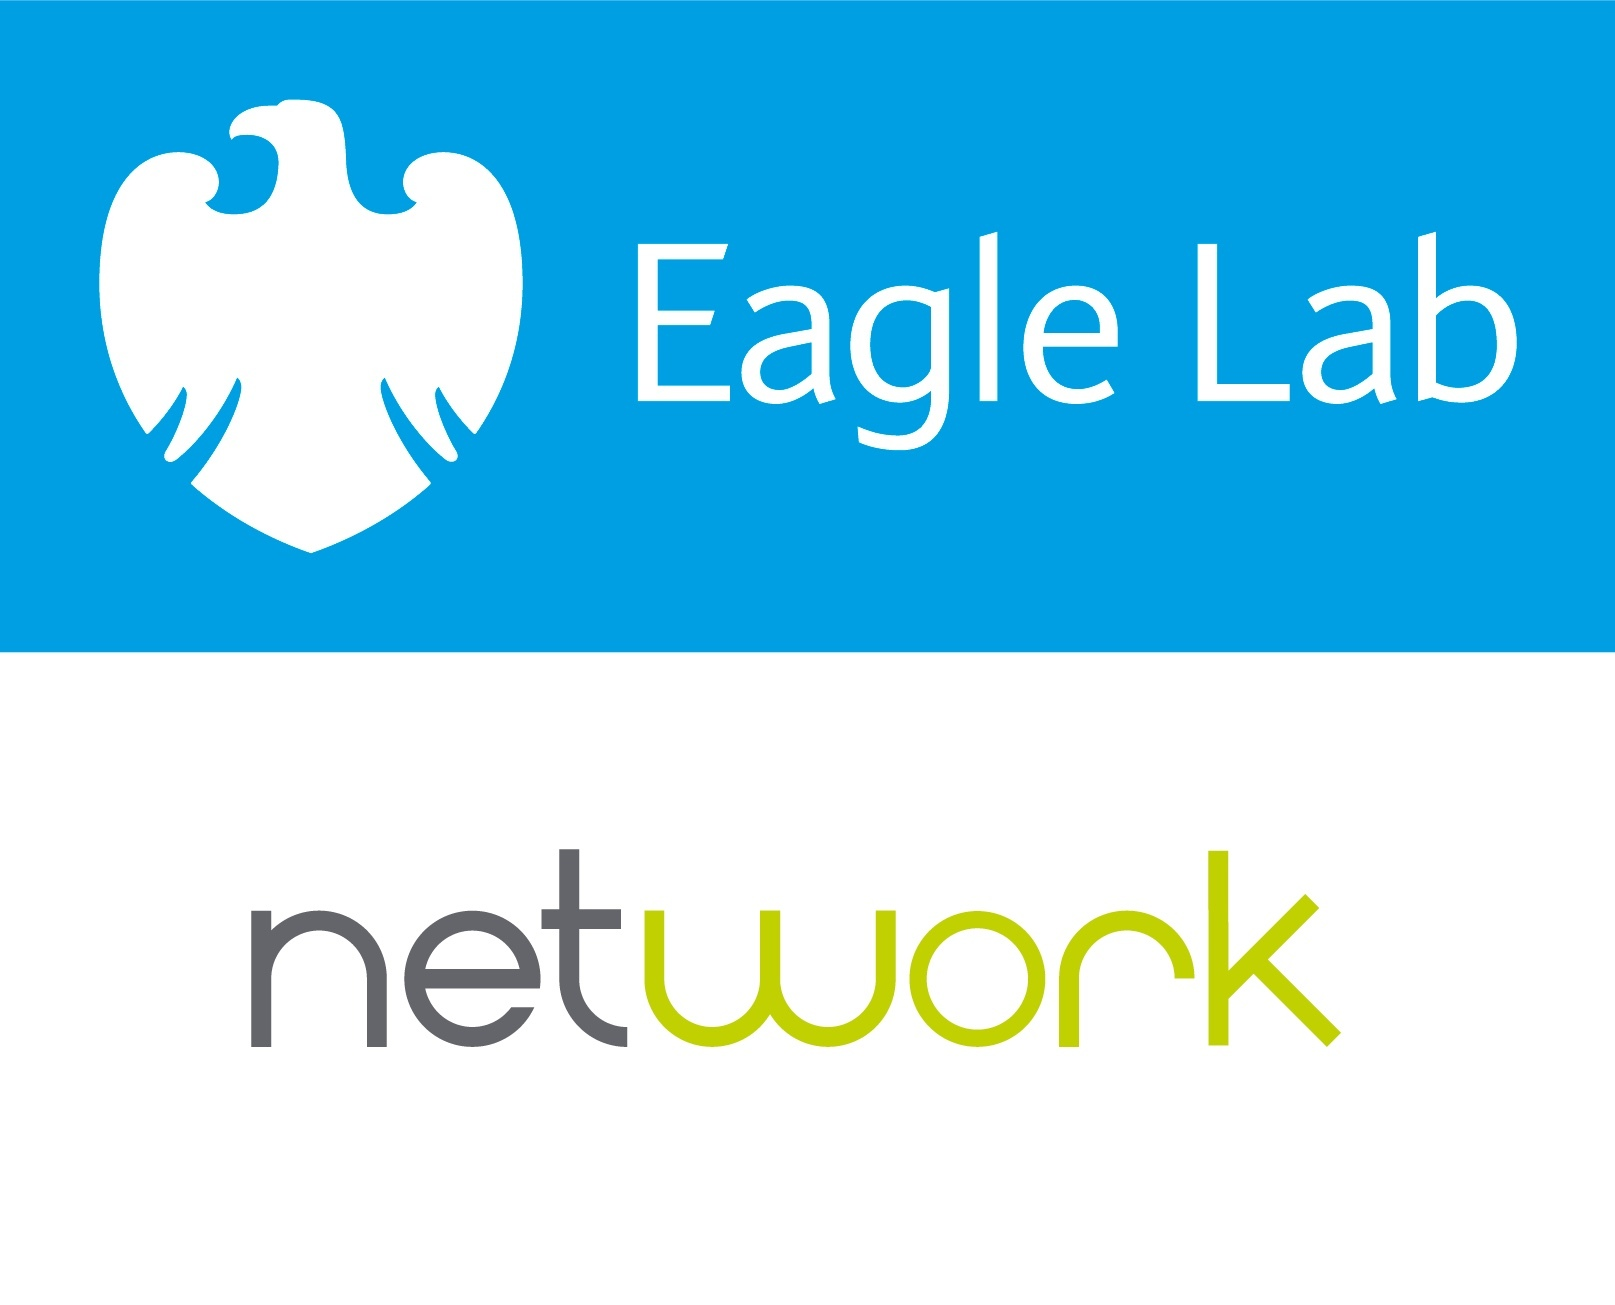 Network Eagle Lab